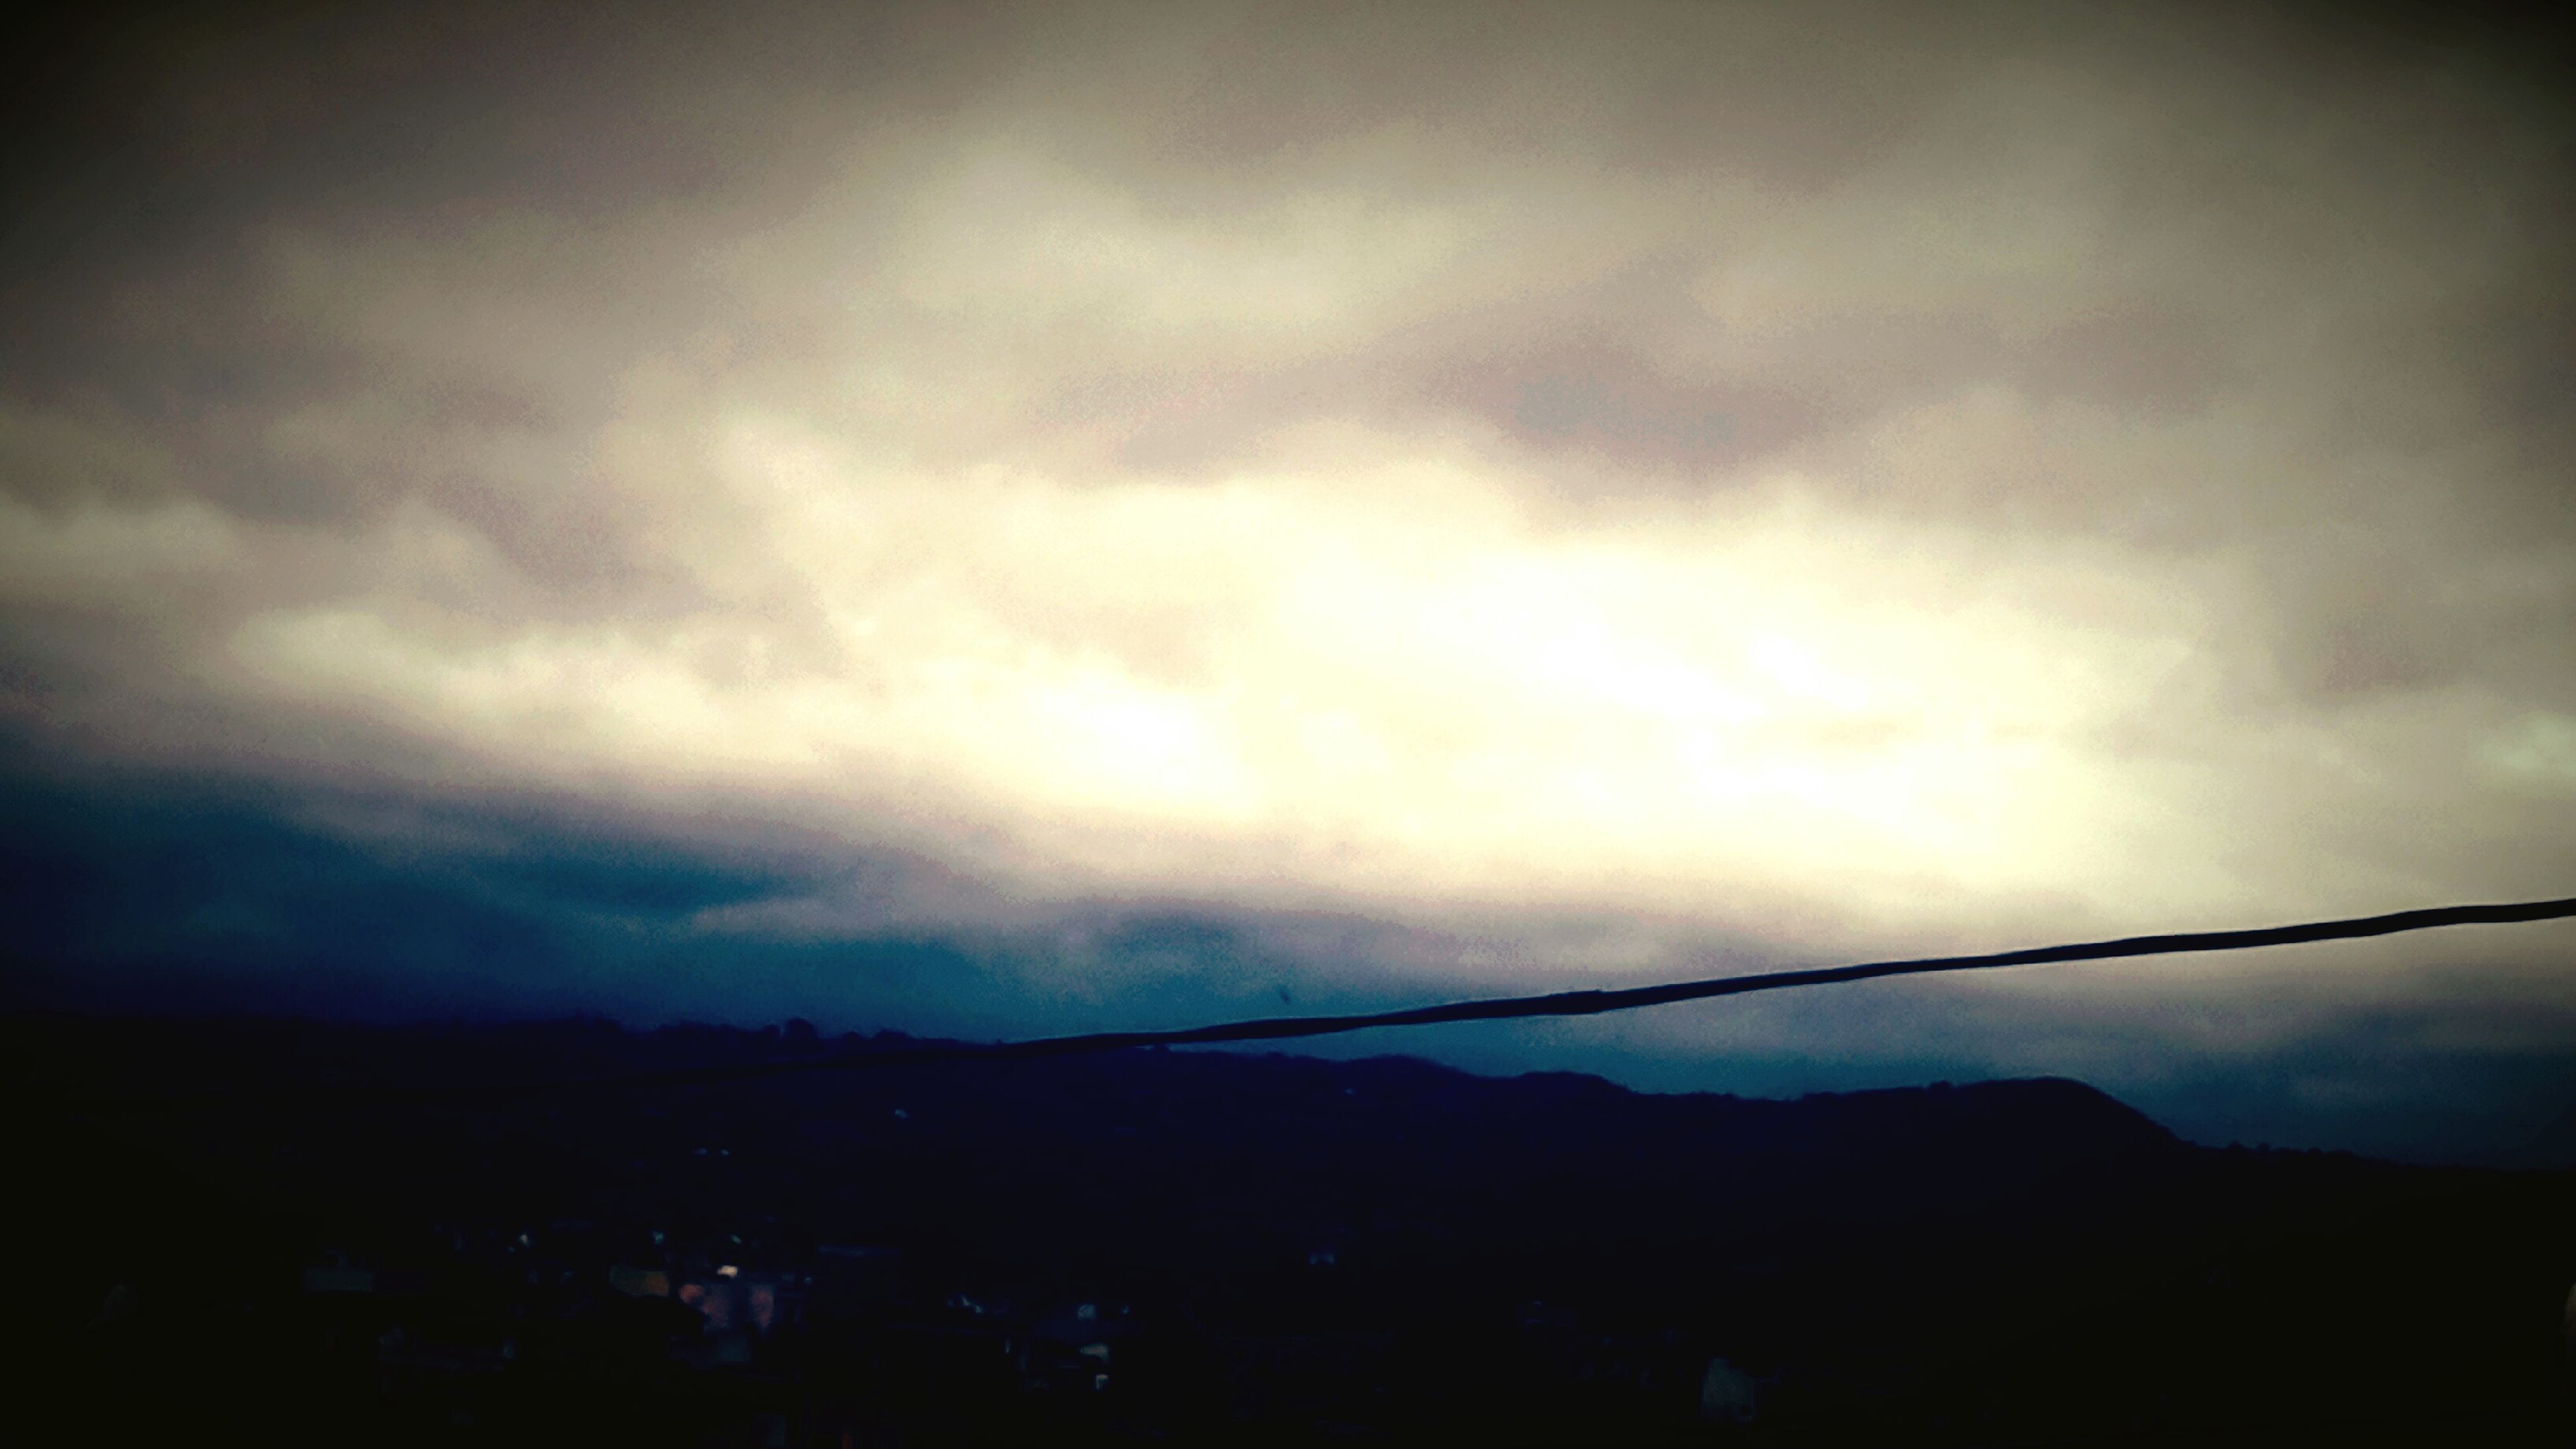 sky, cloud - sky, tranquility, scenics, tranquil scene, silhouette, cloudy, beauty in nature, mountain, weather, nature, landscape, dusk, overcast, low angle view, cloud, mountain range, idyllic, storm cloud, outdoors